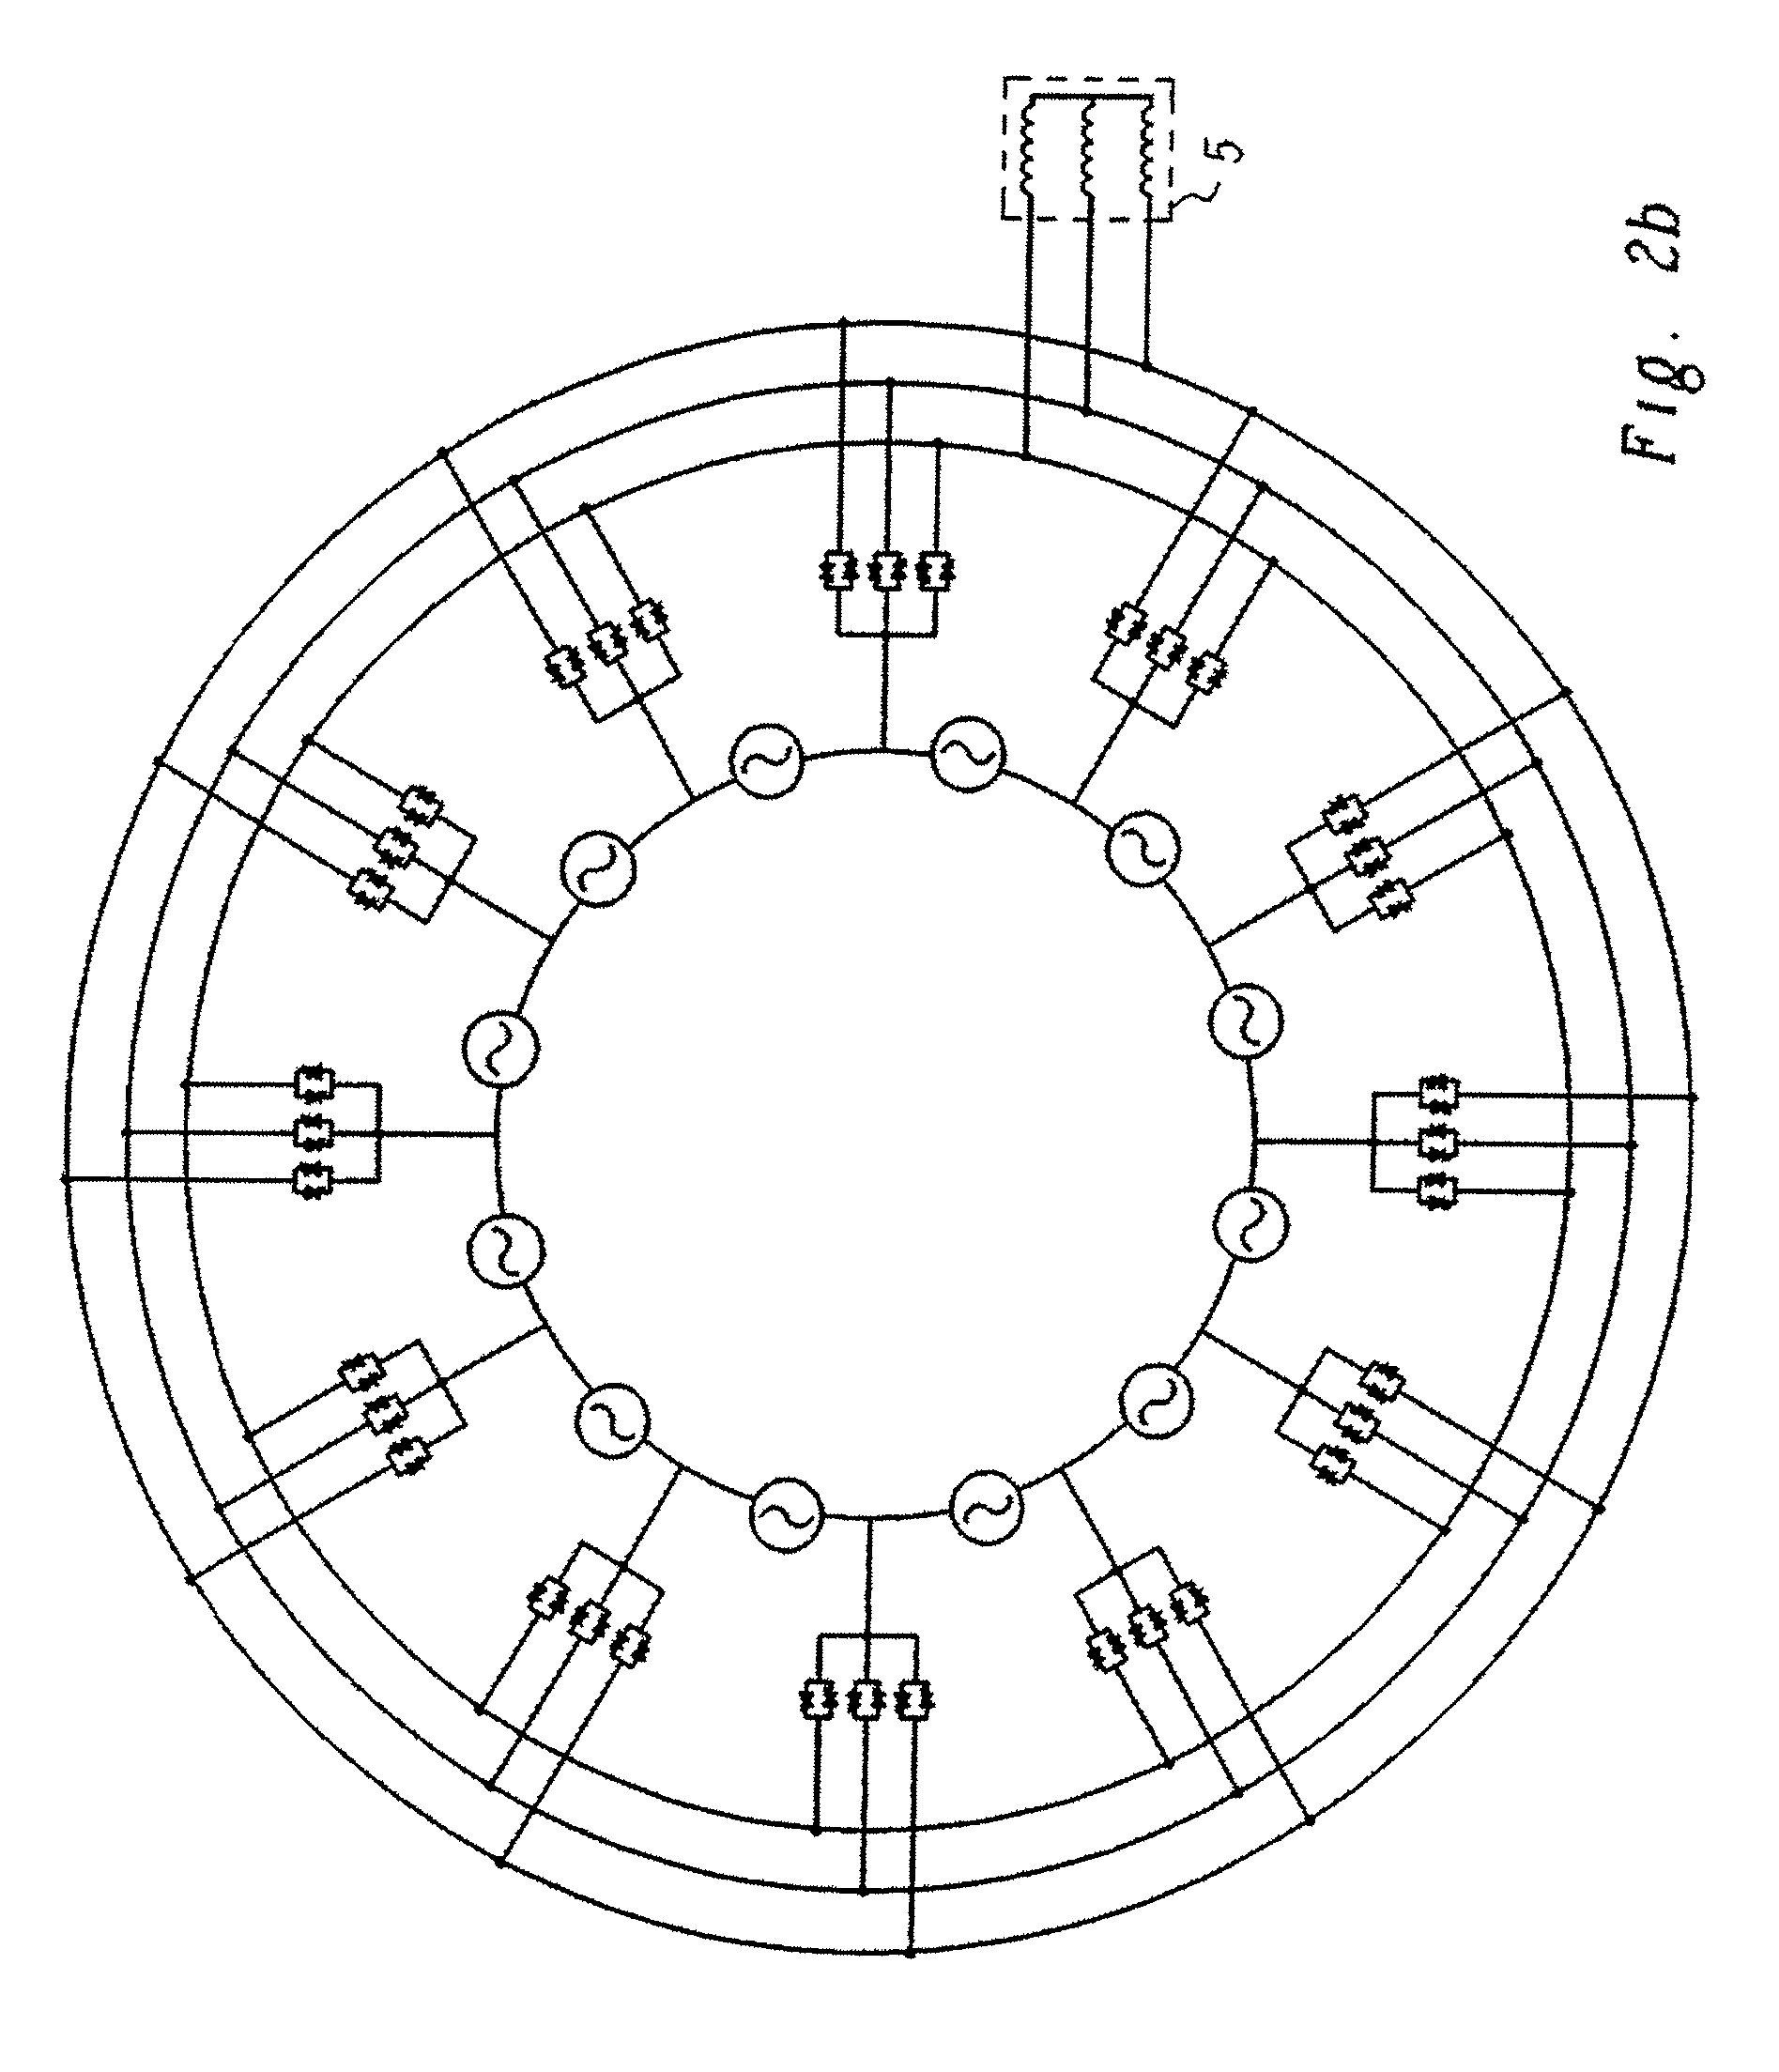 3 phase generator wiring connections single phase motor connections diagram  3 phase generator wiring three phase